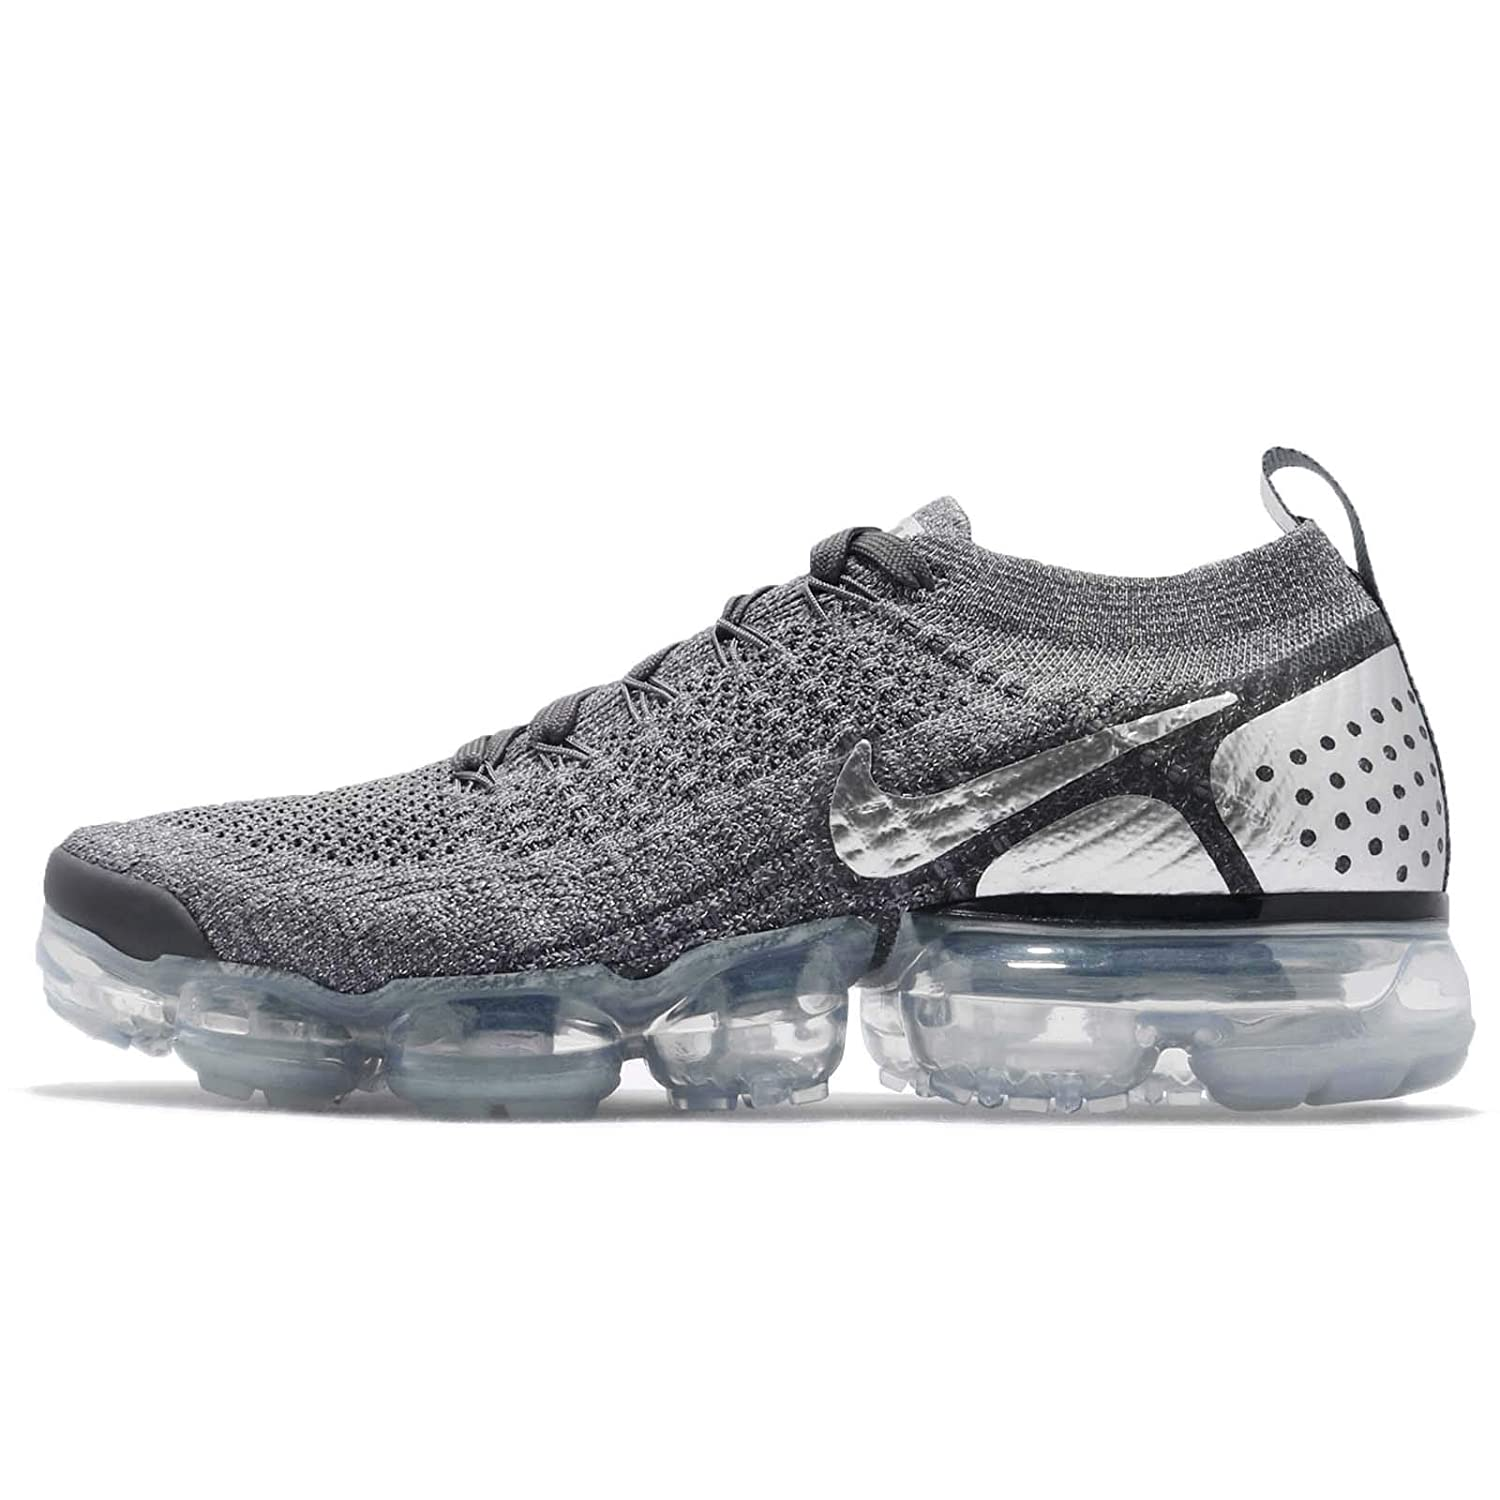 new product e4bf6 cfc42 Amazon.com | NIKE Men's Air Vapormax Flyknit 2, Dark Grey/Chrome-Dark  Grey-Cool Grey, 9 M US | Shoes